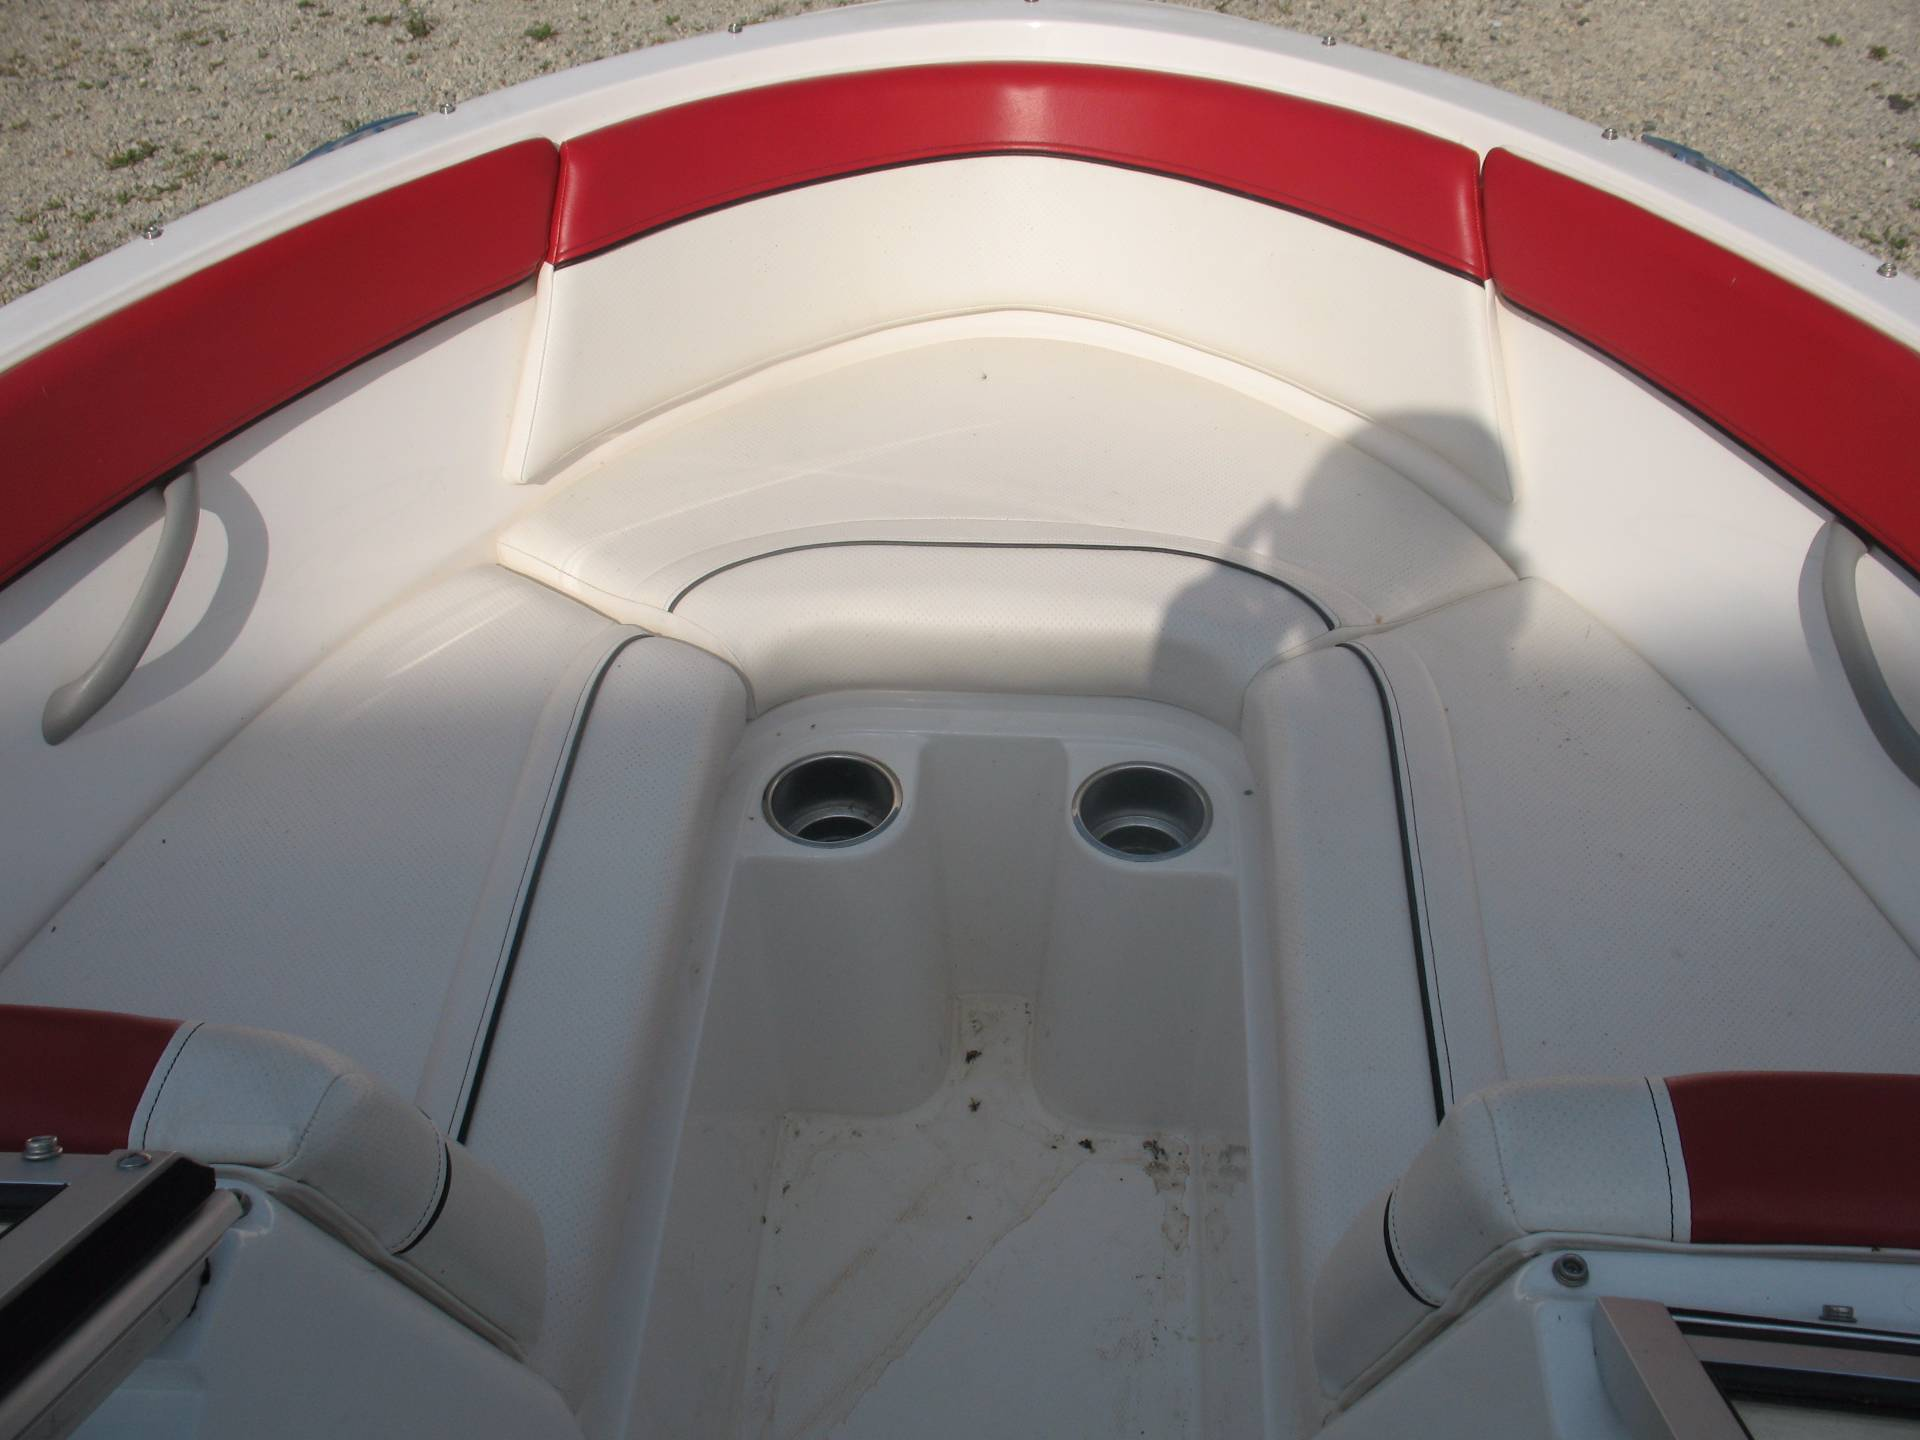 2013 Bayliner 185 in Manitou Beach, Michigan